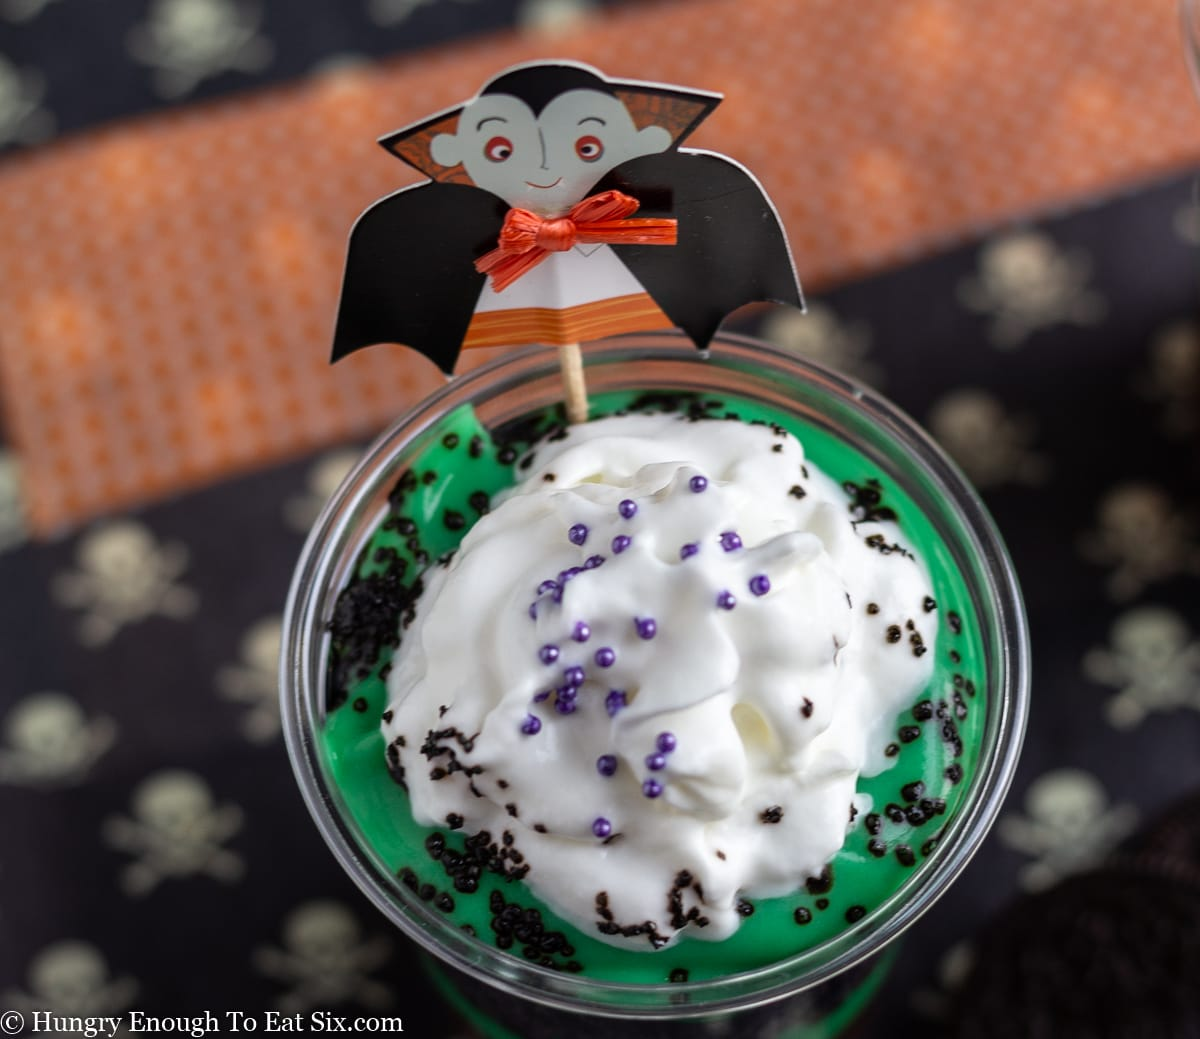 Top of a green and brown parfait with whipped cream topped with a vampire pick